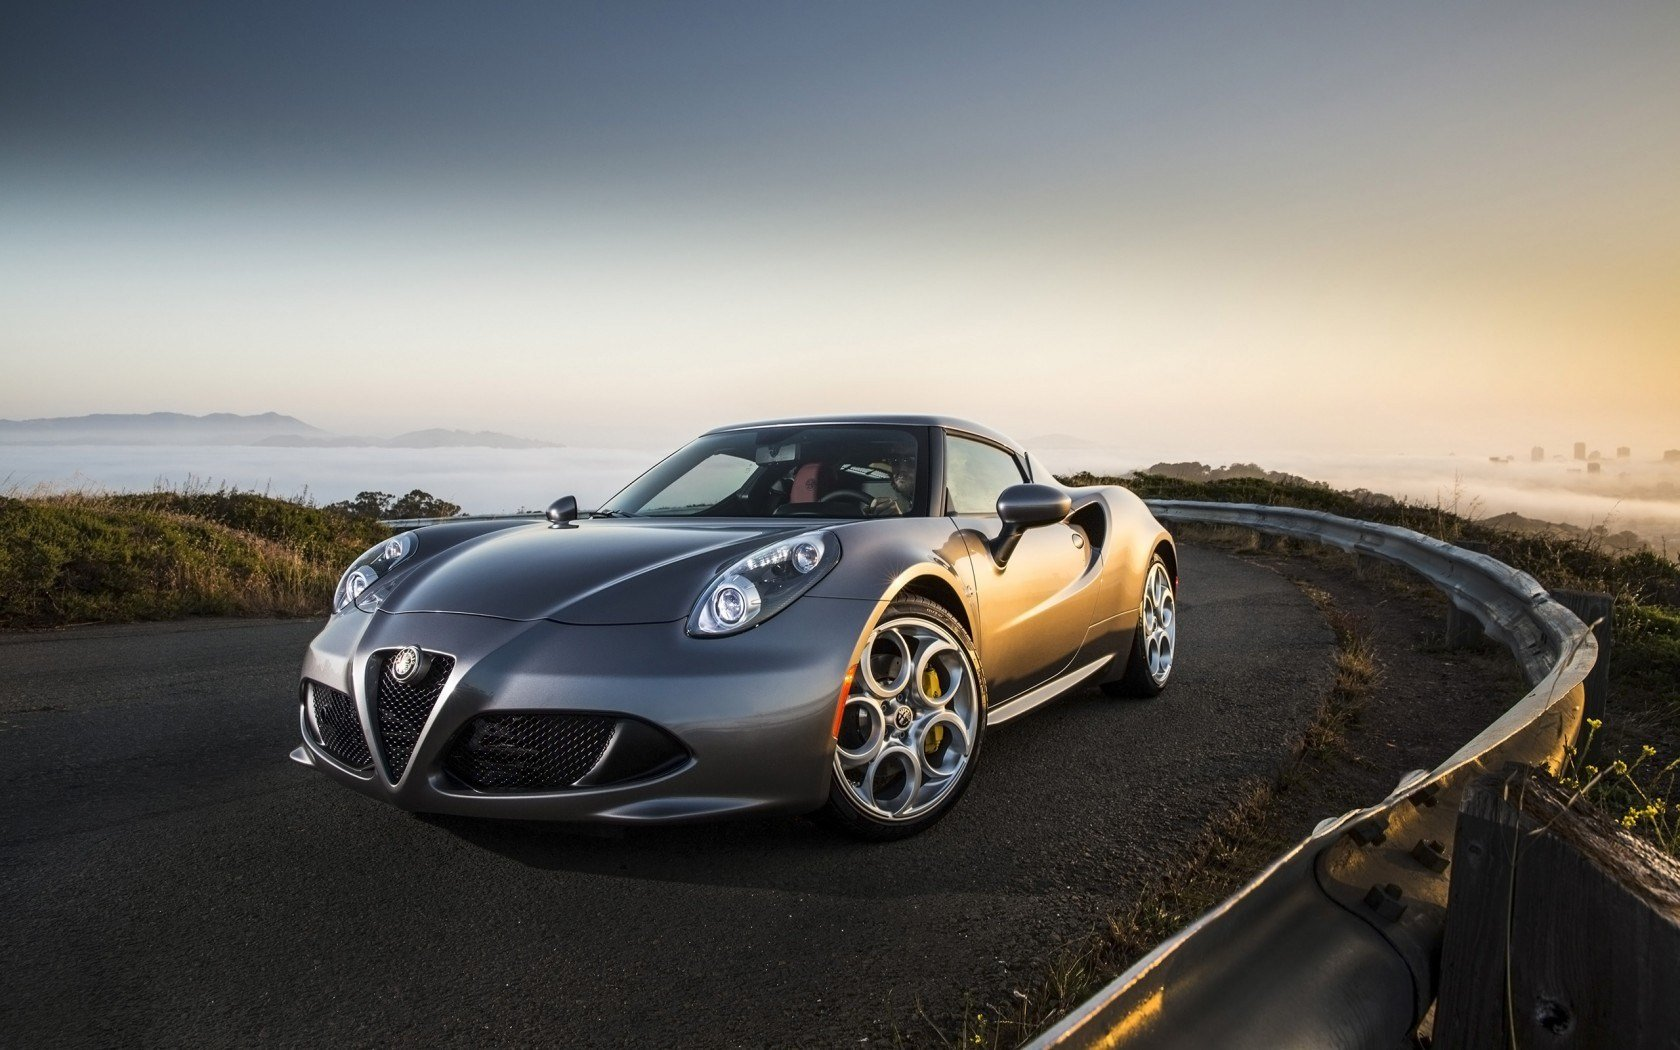 Latest 2015 Alfa Romeo 4C Silver Wallpaper Hd Car Wallpapers Free Download